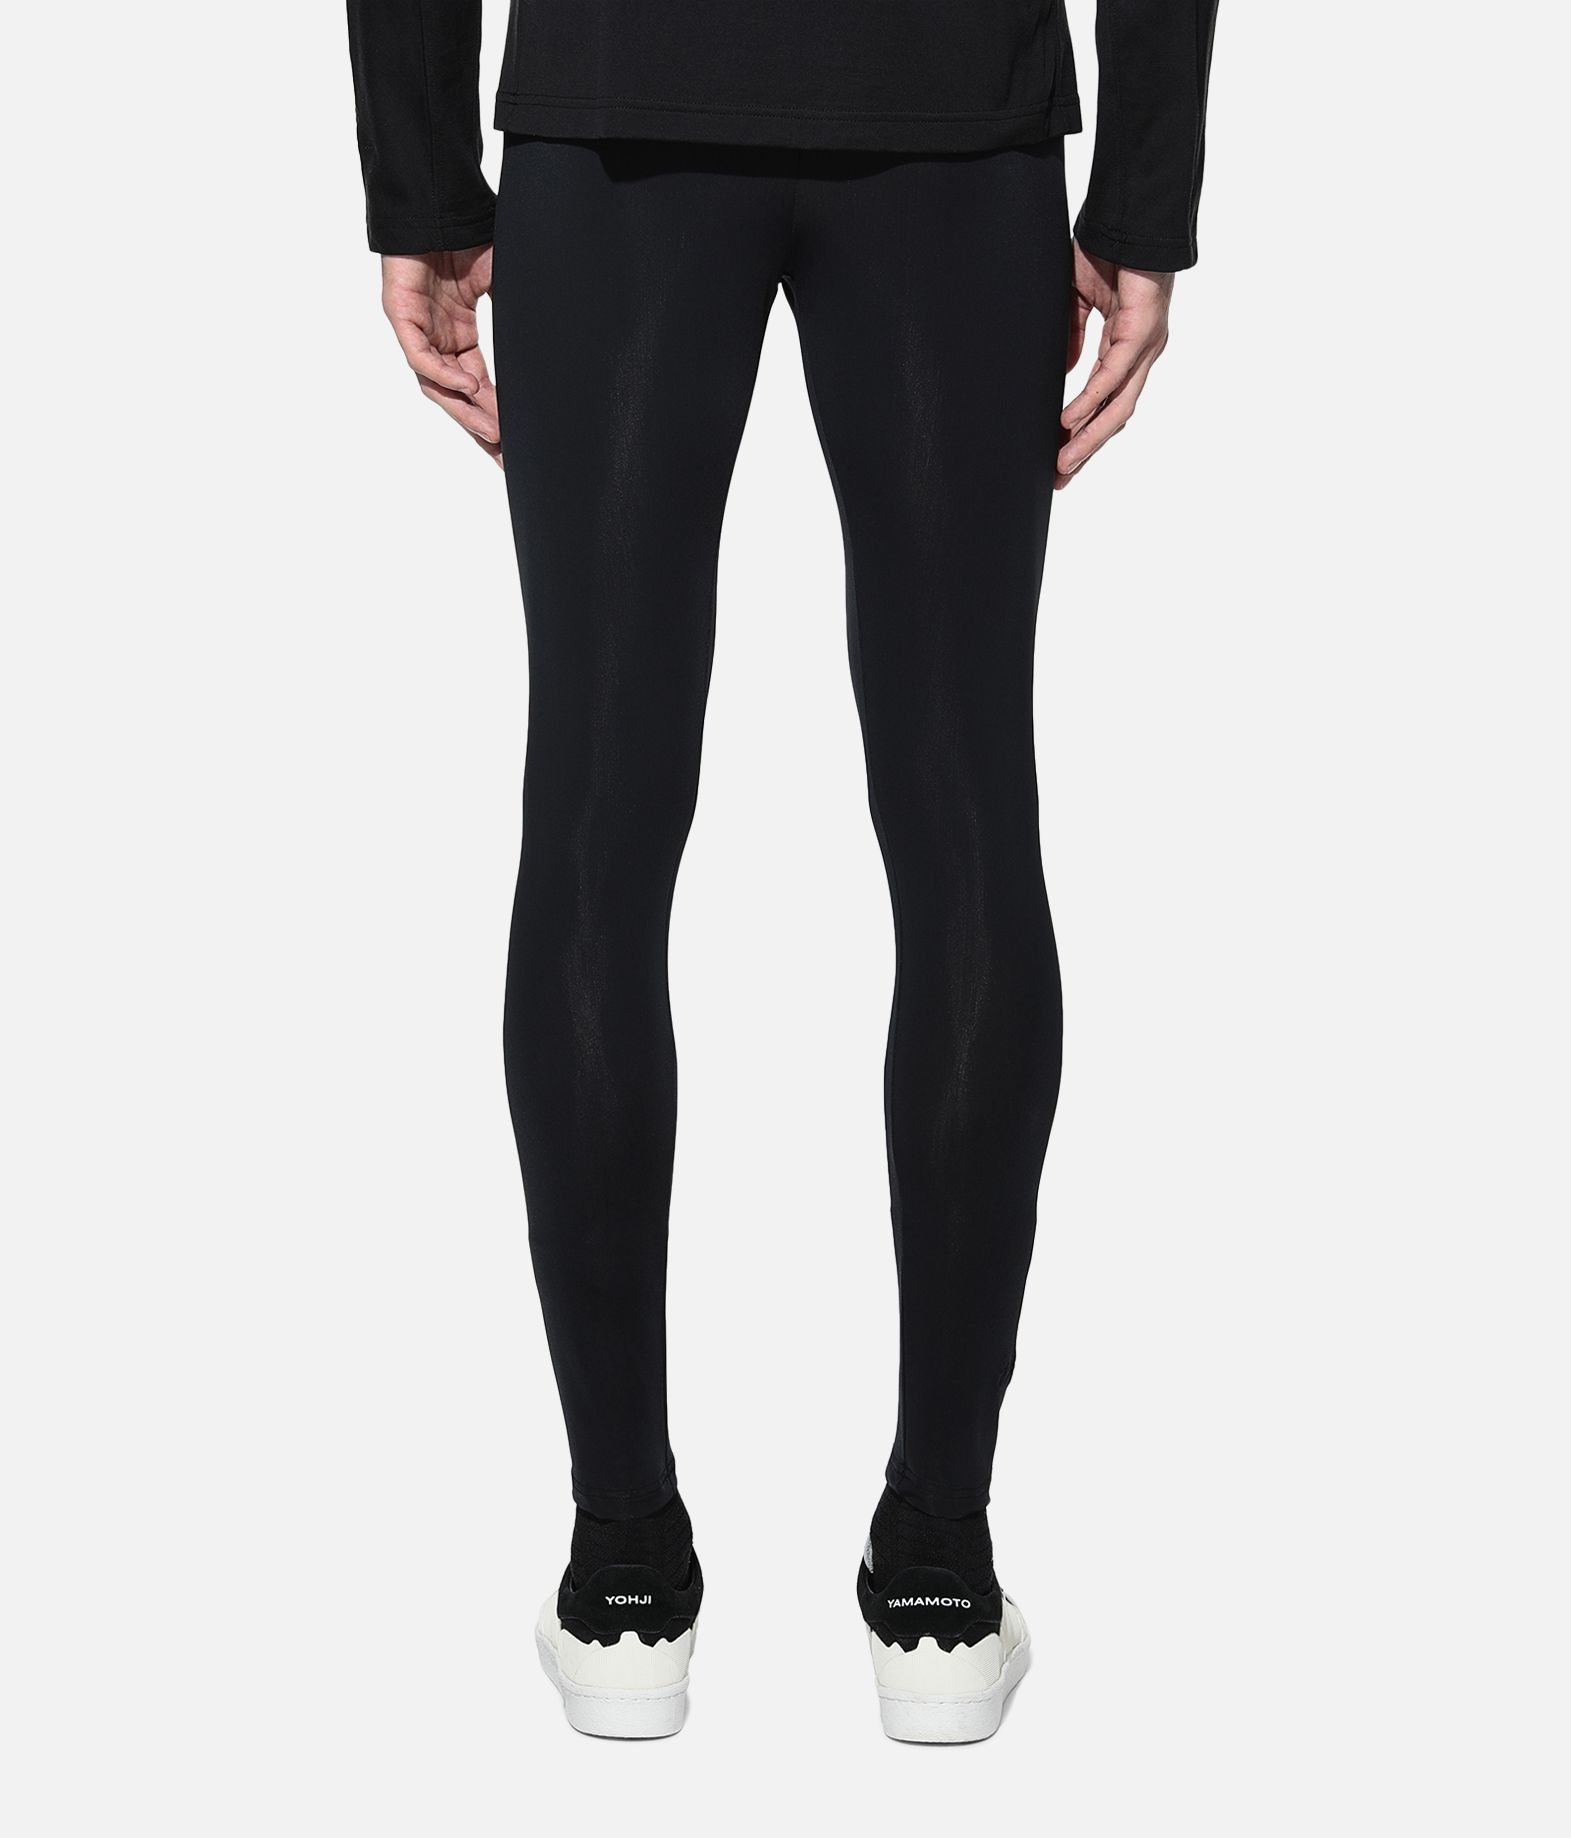 Y-3 Y-3 New Classic Tights Leggings Man d